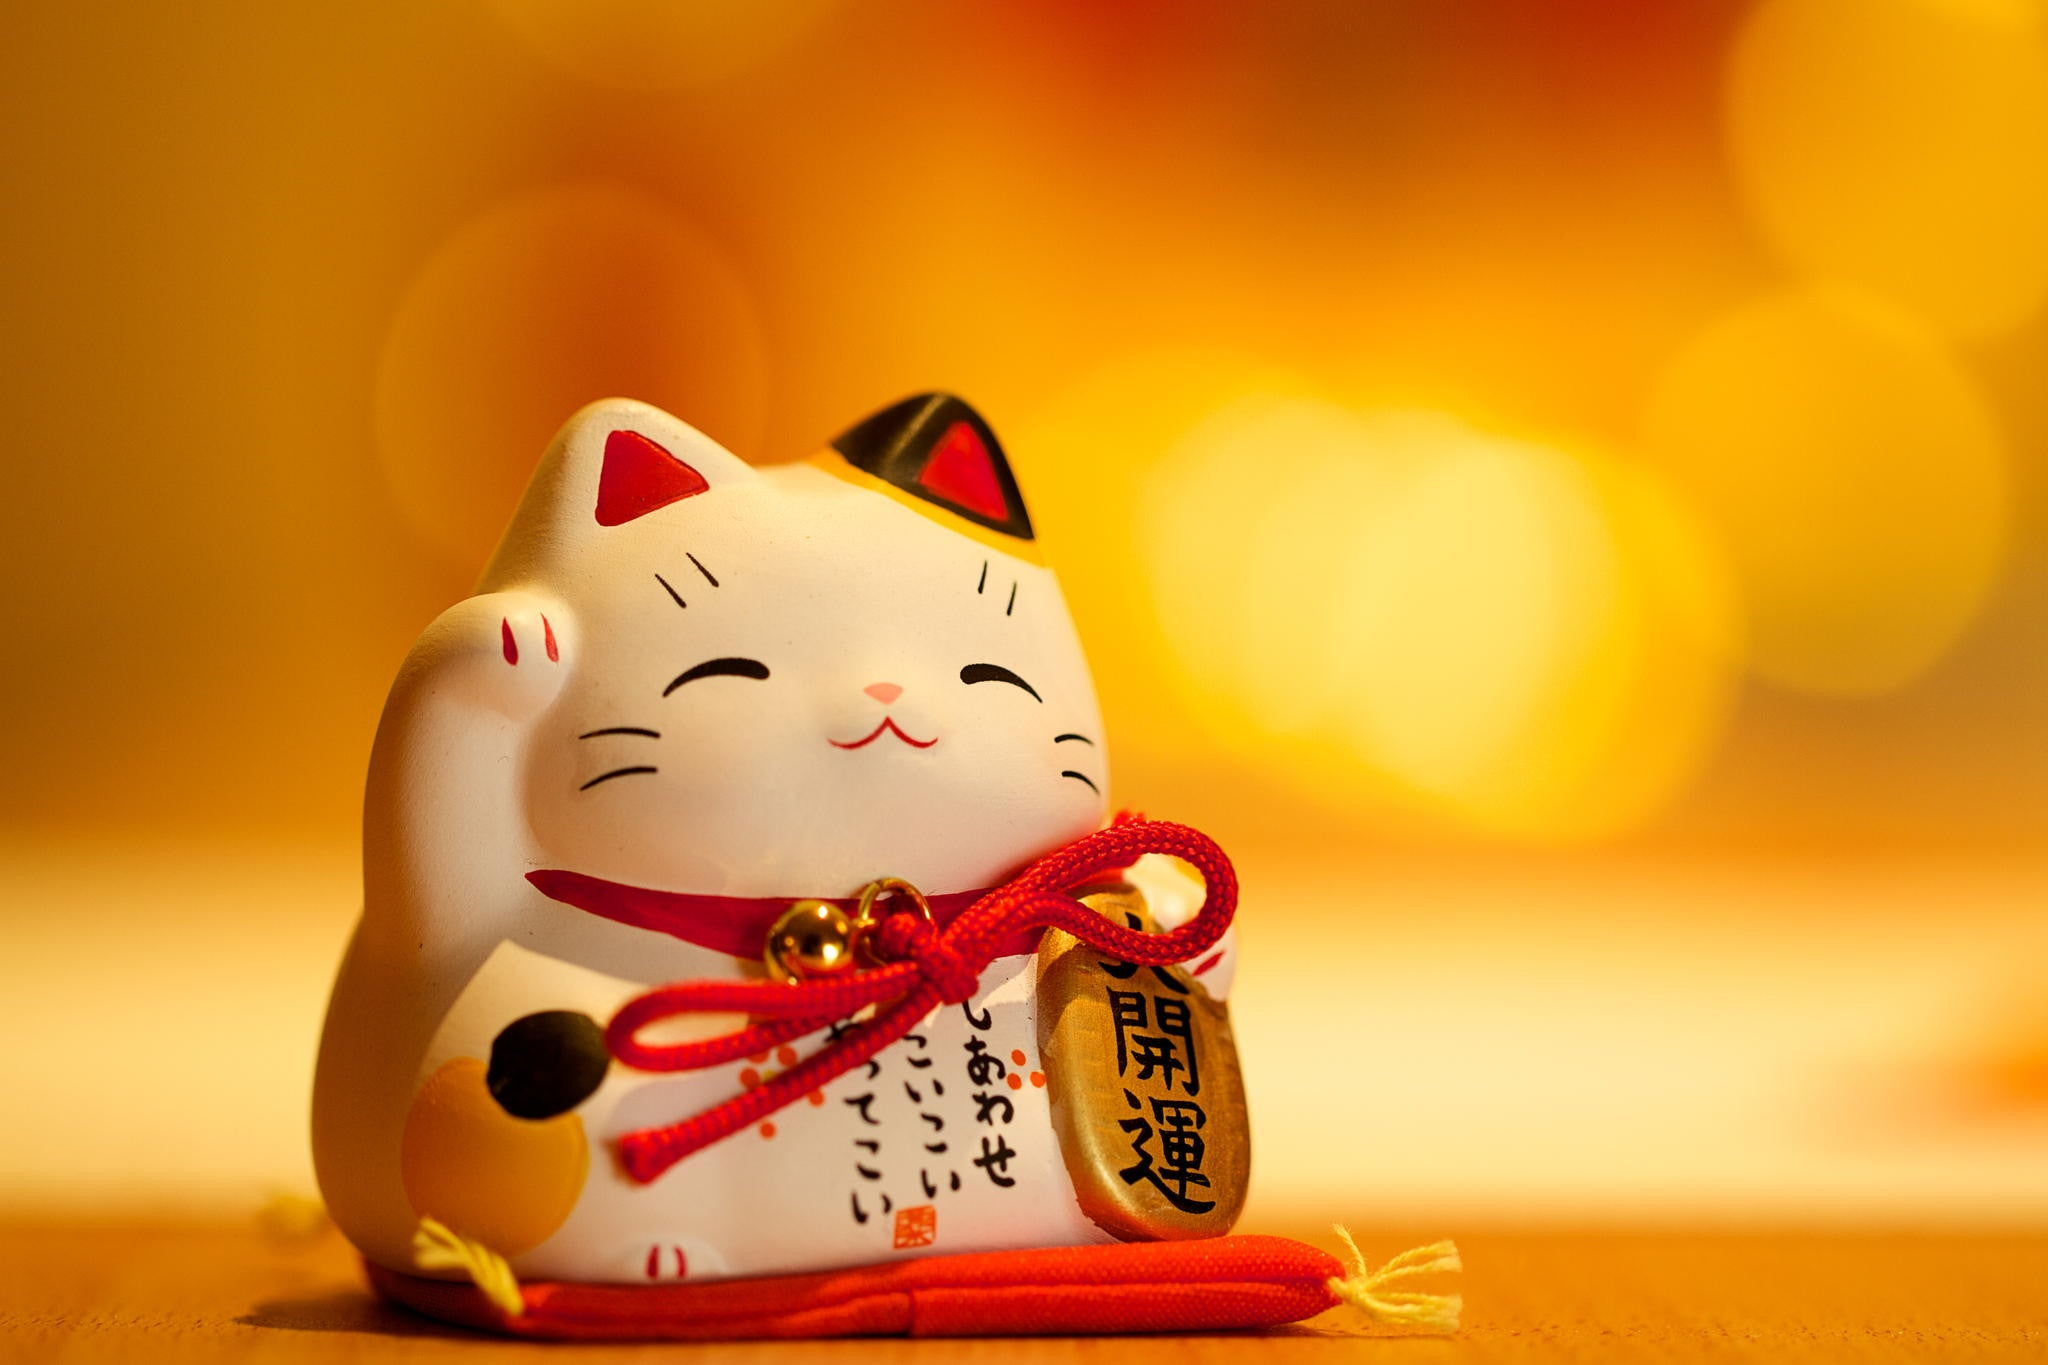 maneki neko good luck cat calico cat figurine